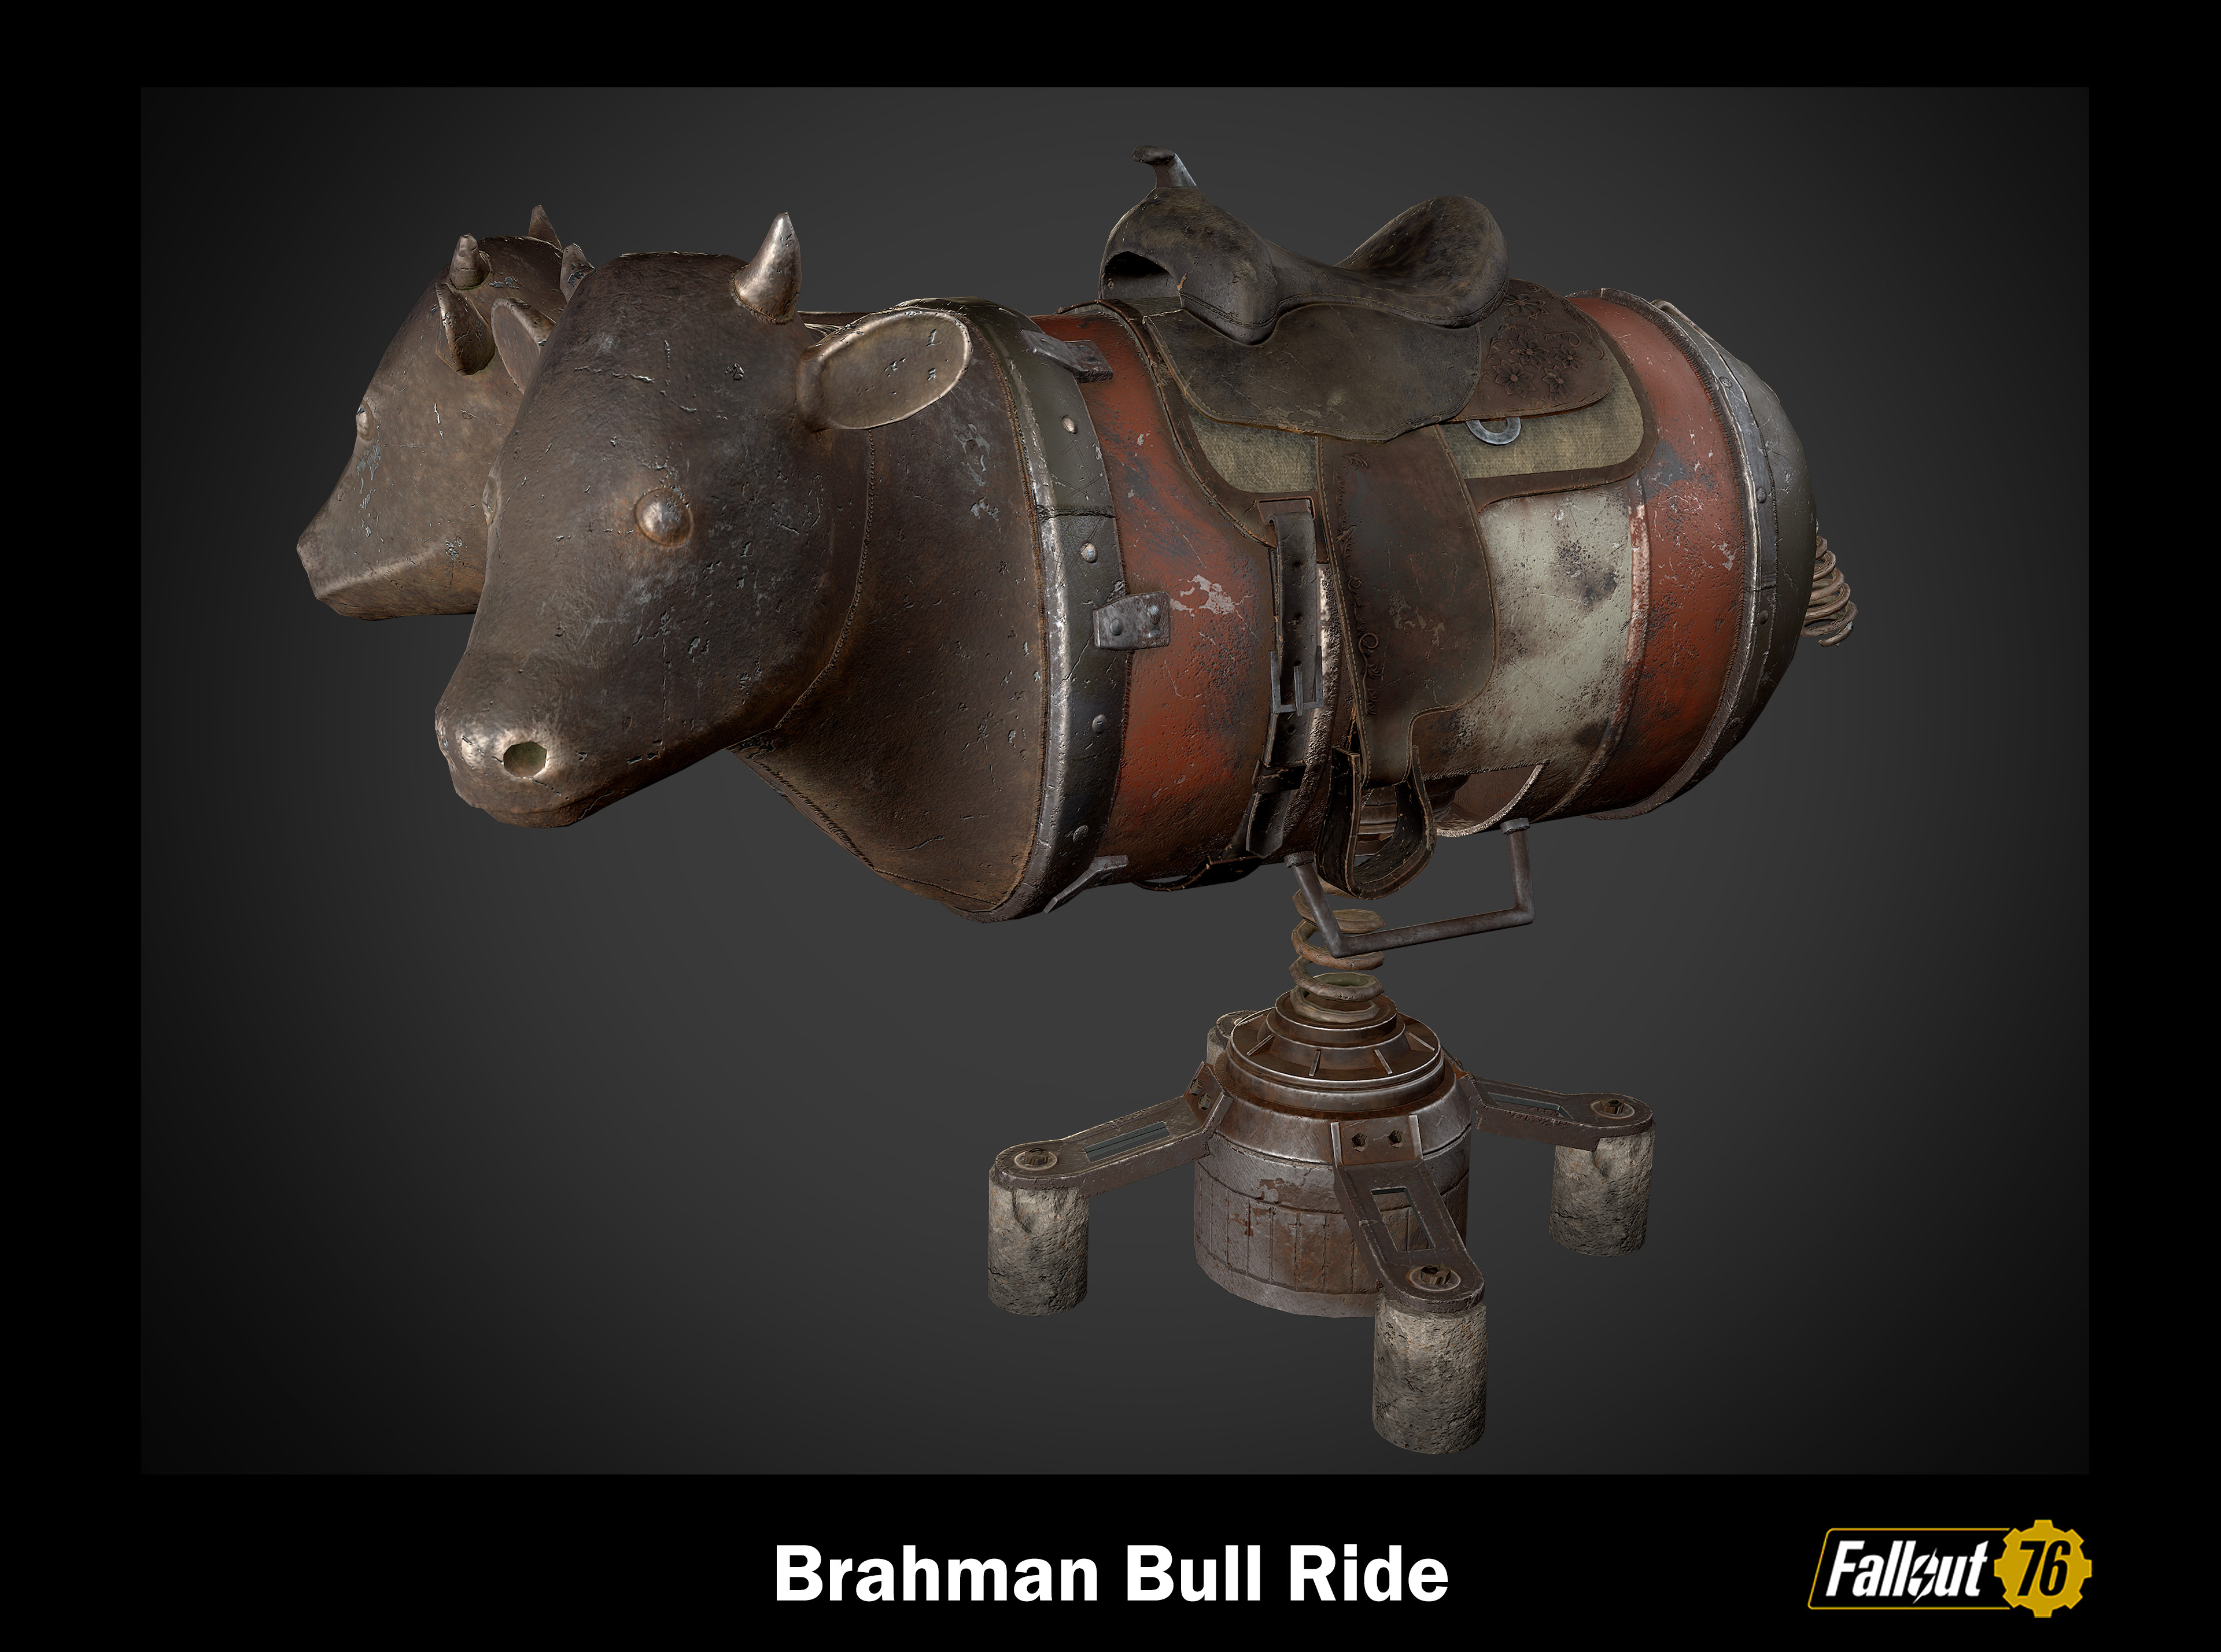 This is an Atomic Shop asset. I used 3ds Max, Zbrush, and Substance painter.